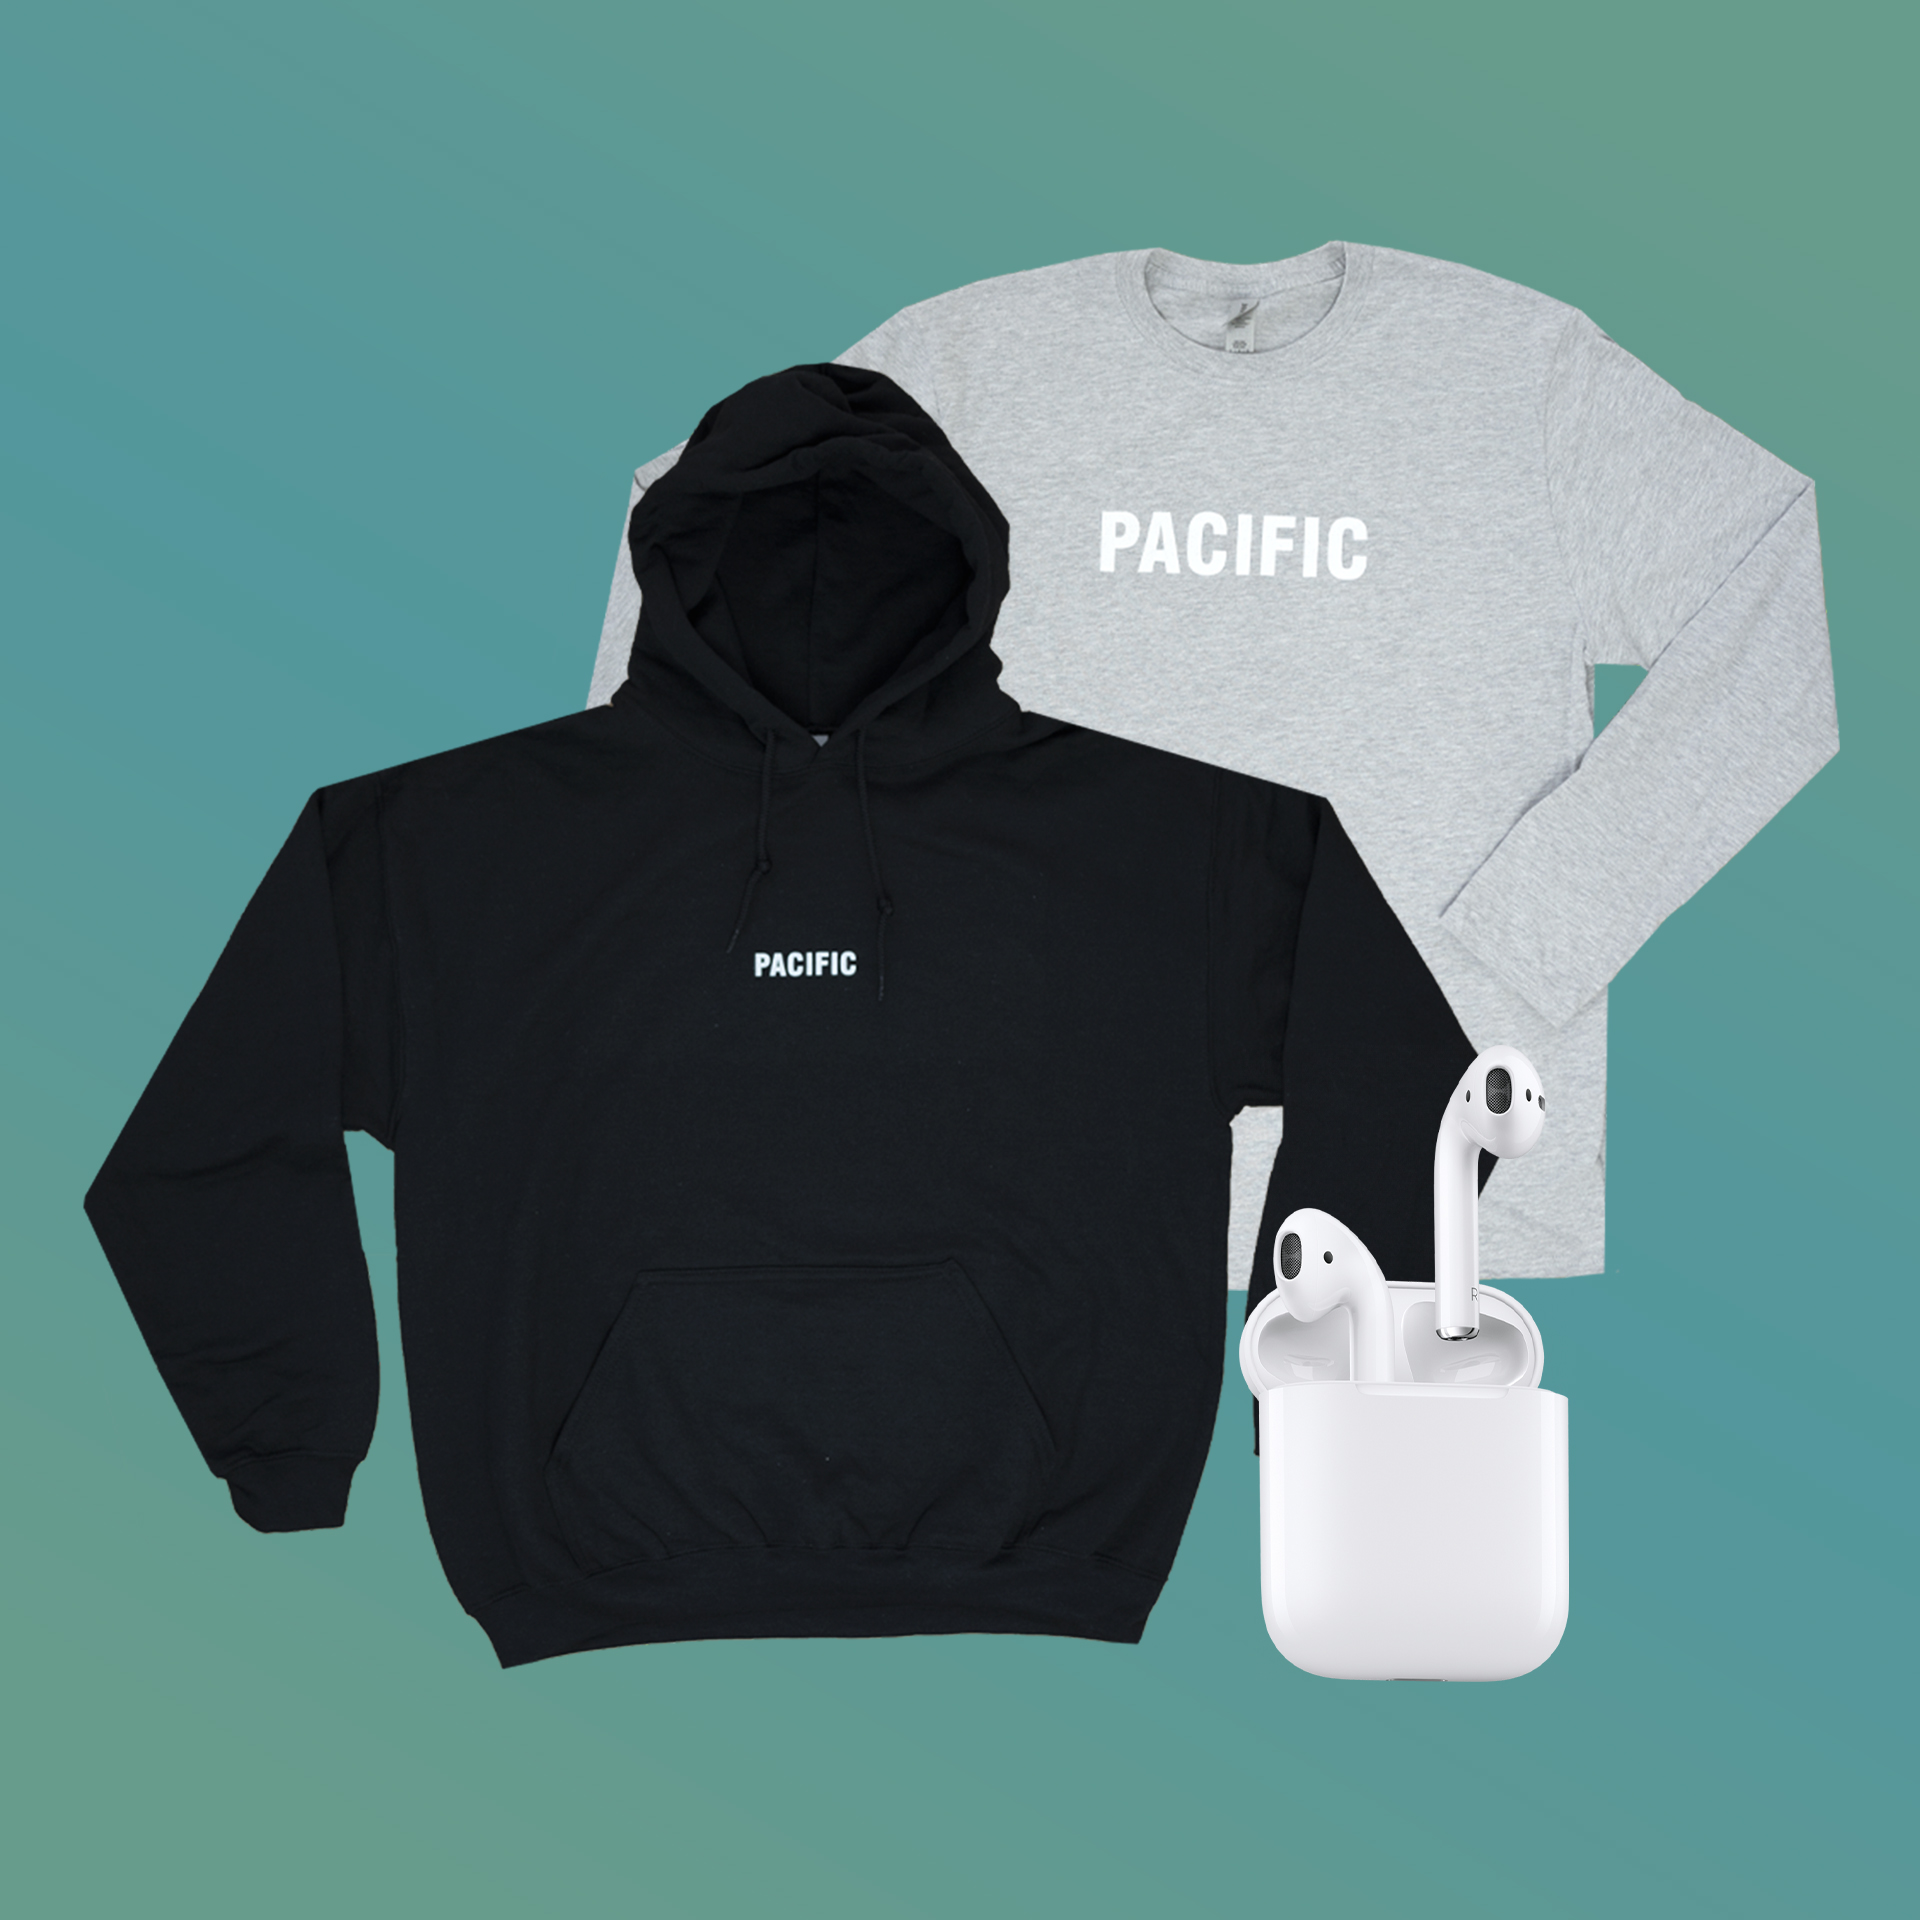 online contests, sweepstakes and giveaways - AIRPOD + MERCH BUNDLE GIVEAWAY